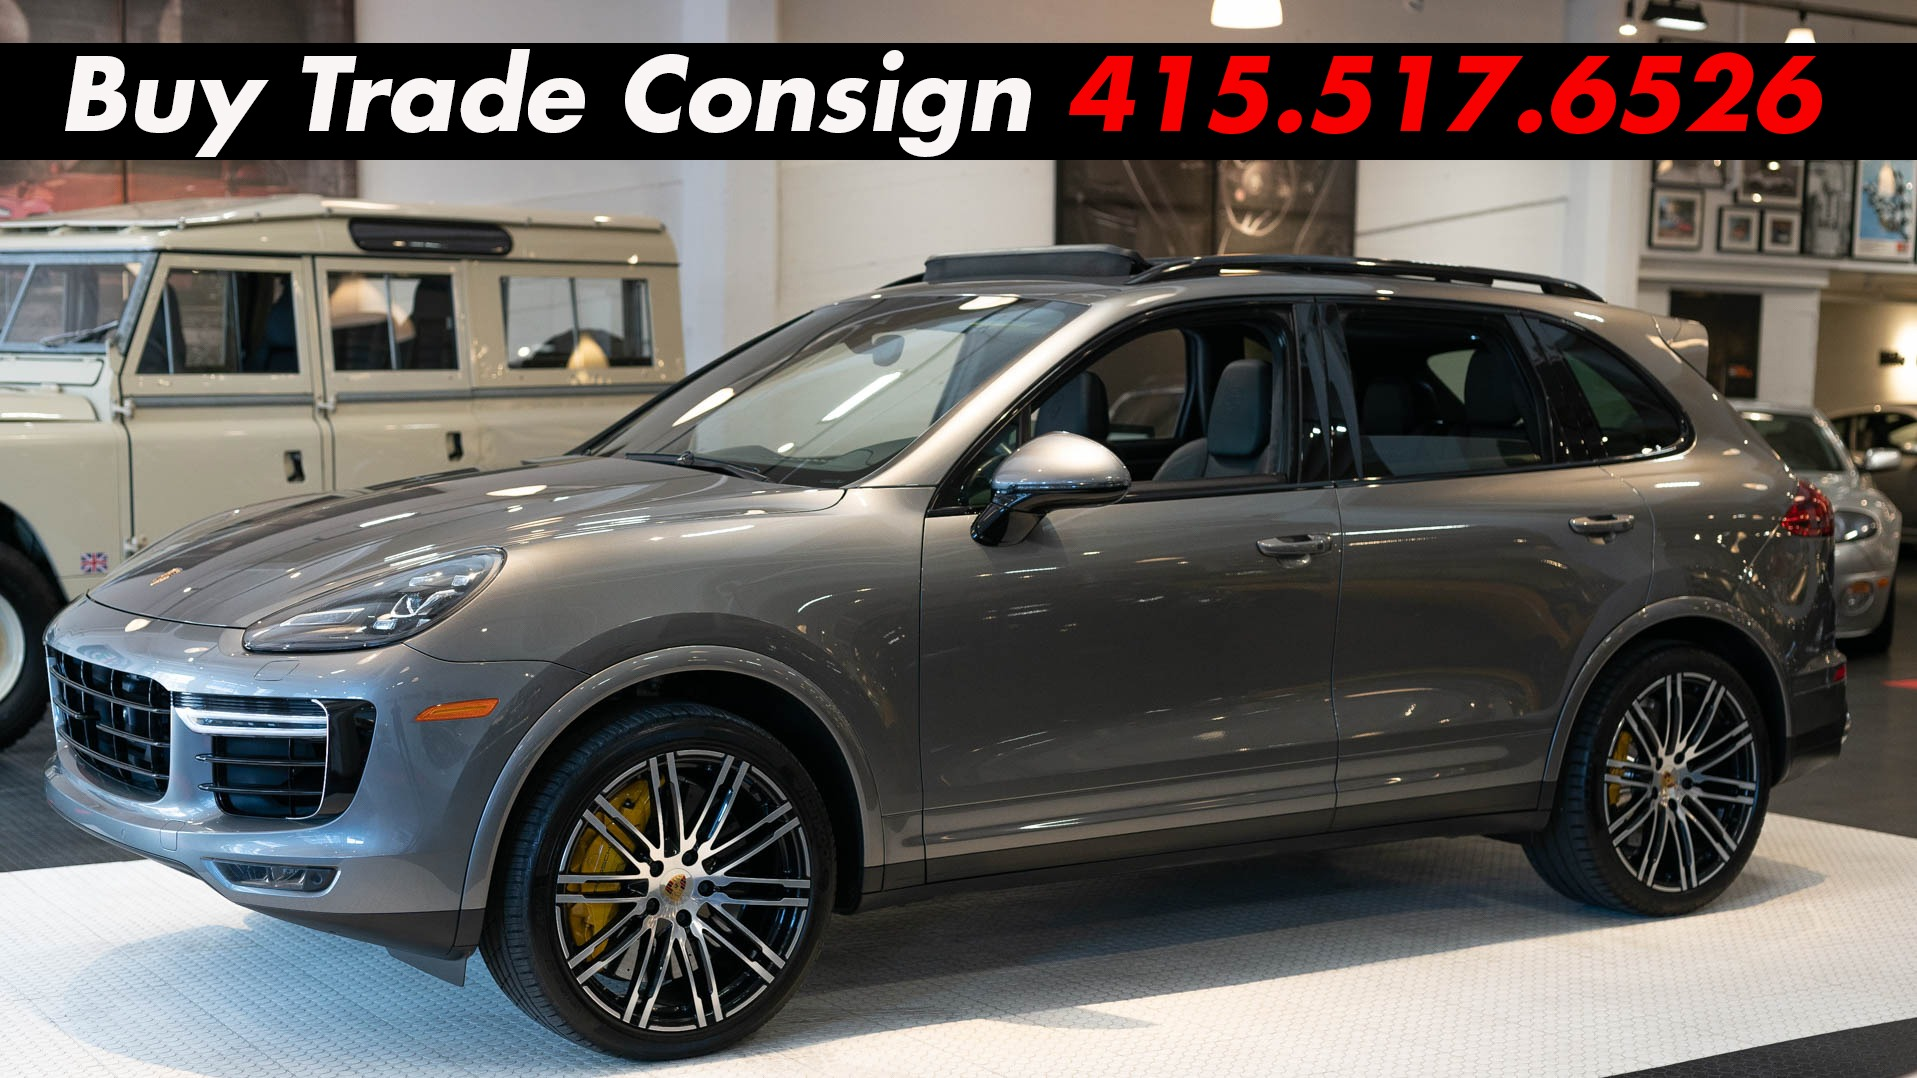 Used 2016 Porsche Cayenne Turbo S For Sale 79 900 Cars Dawydiak Stock 190108